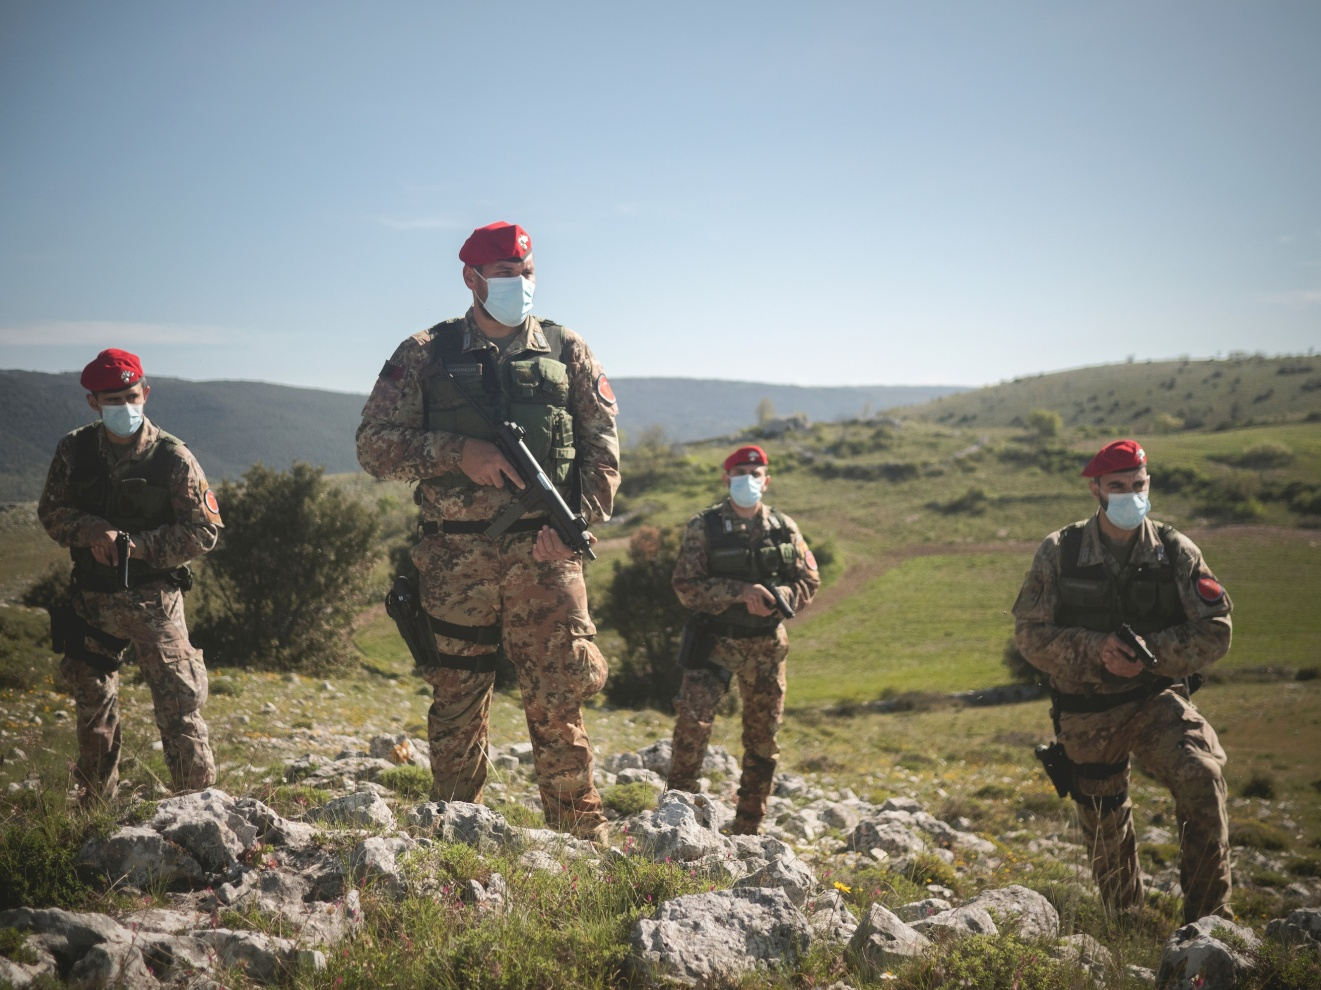 001_ULUP - Italy;Apulia;San Marco in Lamis;2021  Patrolling near San Marco in Lamis of Puglia Hunters. The squadron sent in 2017 after the massacre that took place in San Marco in Lamis is particularly concerned about the territory of the Gargano.  This special department of the Carabinieri (Italian military police) was founded in Calabria to counter the 'Ndrangheta. It operates in the regions where it is needed the most: Calabria, Campania, Sicily, Sardinia and Apulia. The hunters are crucial in a territory as complicated as Gargano, with hundreds of caves, abandoned farms and paths that only the locals and criminals know very well. Since they started, the results have been 429 arrests.